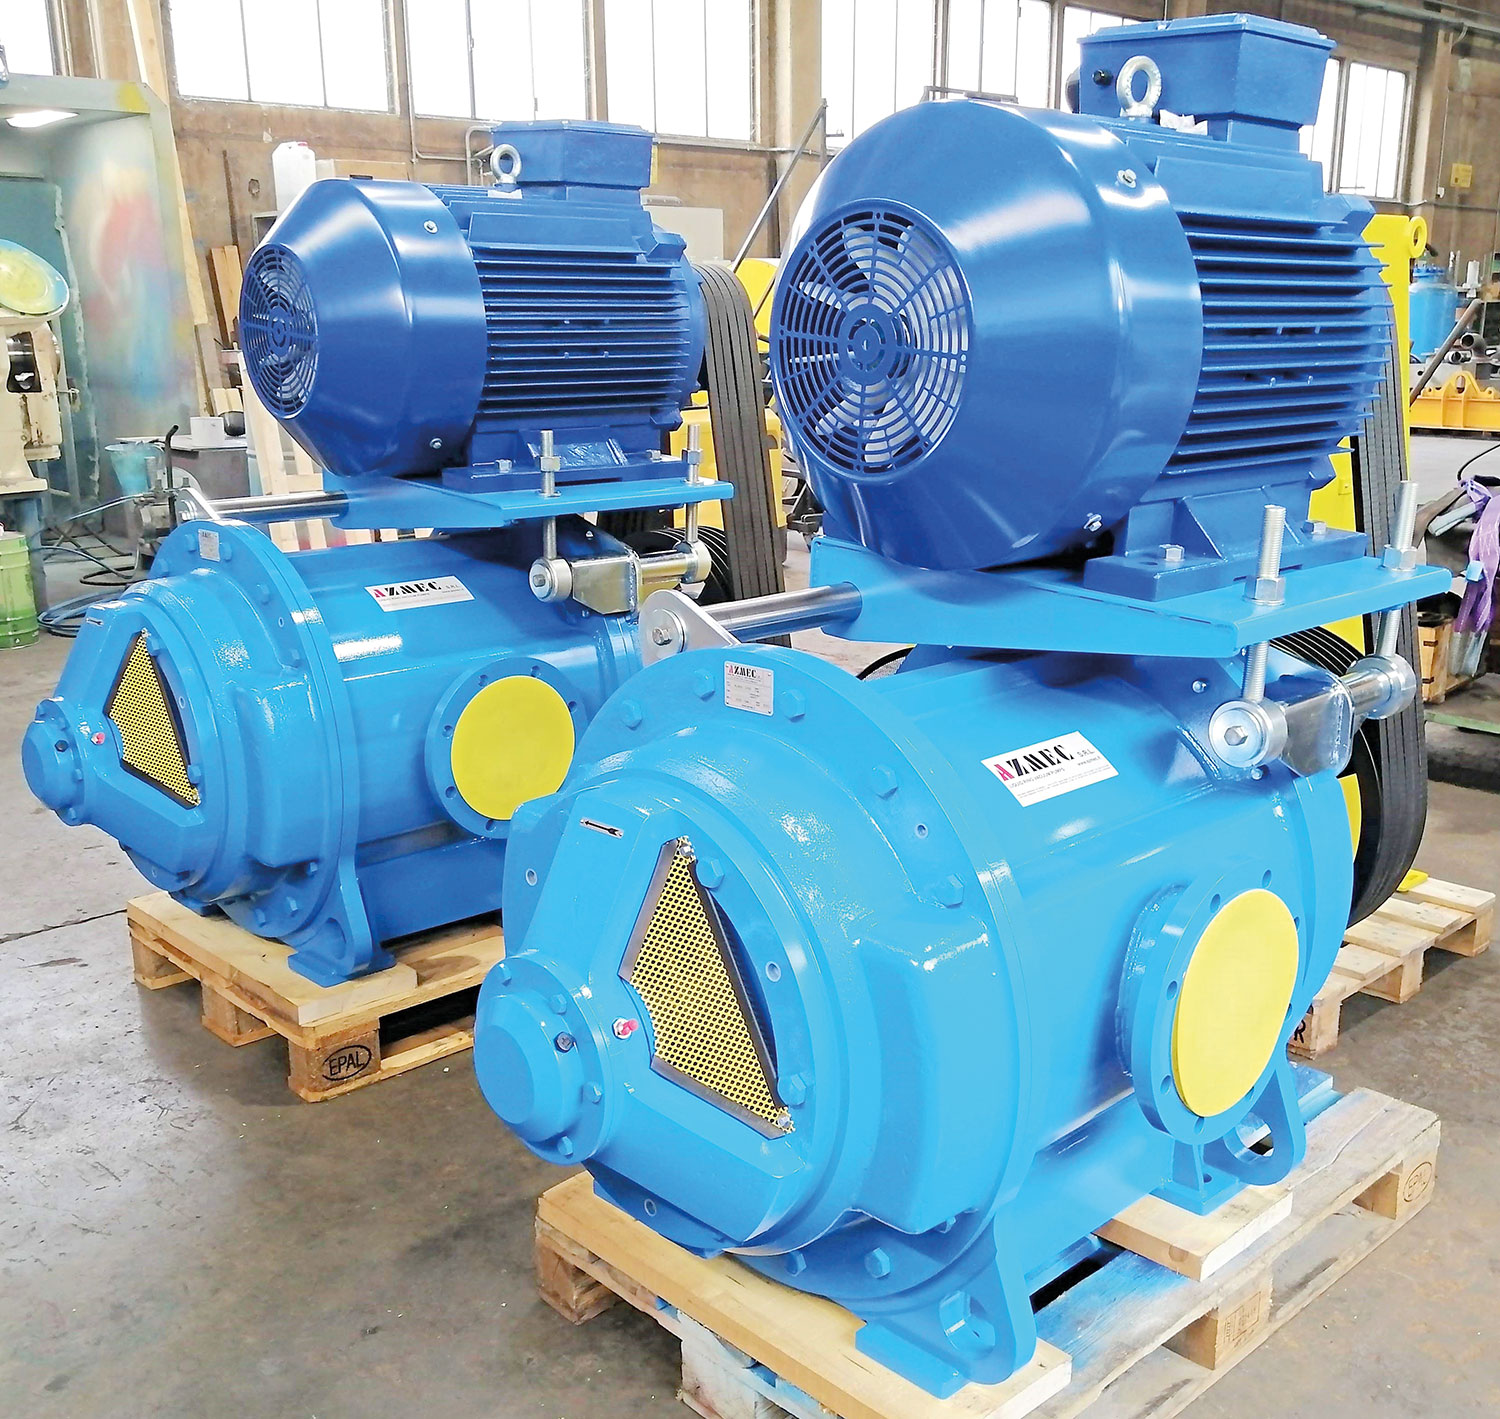 Vacuum pump groups AL50 for a papermill in Italy